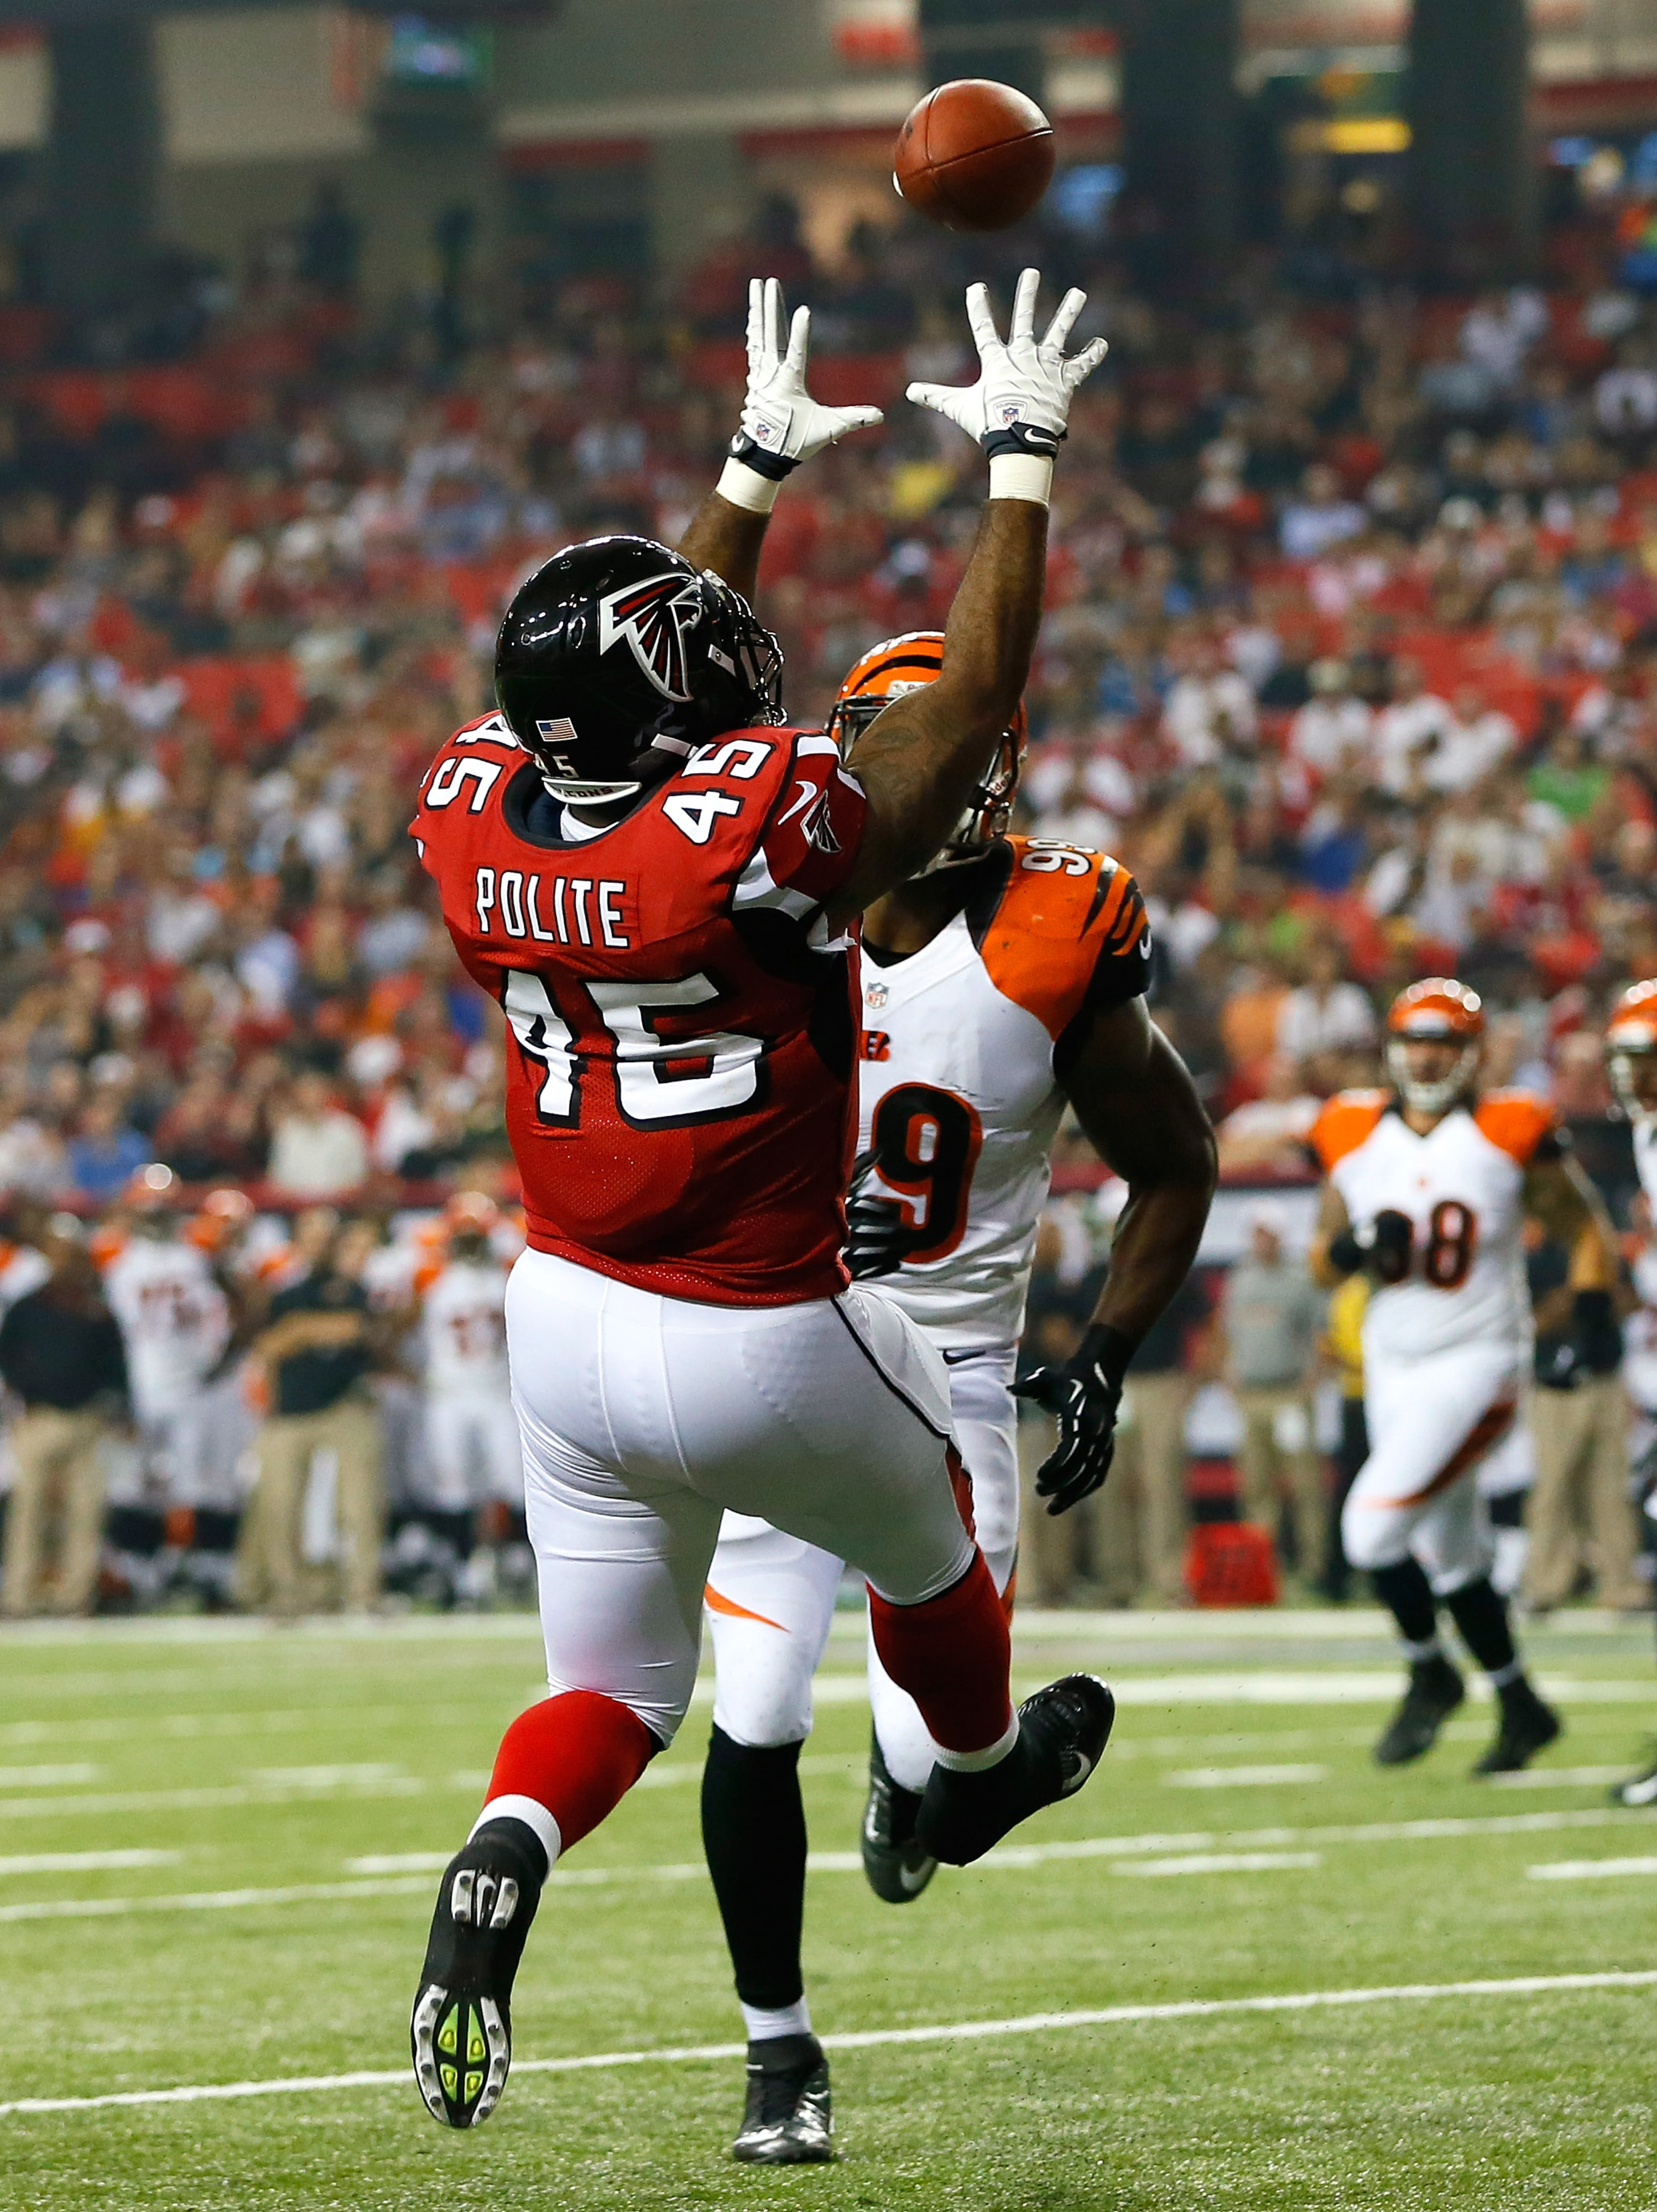 ATLANTA, GA - AUGUST 16:  Lousaka Polite #45 of the Atlanta Falcons pulls in this touchdown reception against Manny Lawson #99 of the Cincinnati Bengals at Georgia Dome on August 16, 2012 in Atlanta, Georgia.  (Photo by Kevin C. Cox/Getty Images)